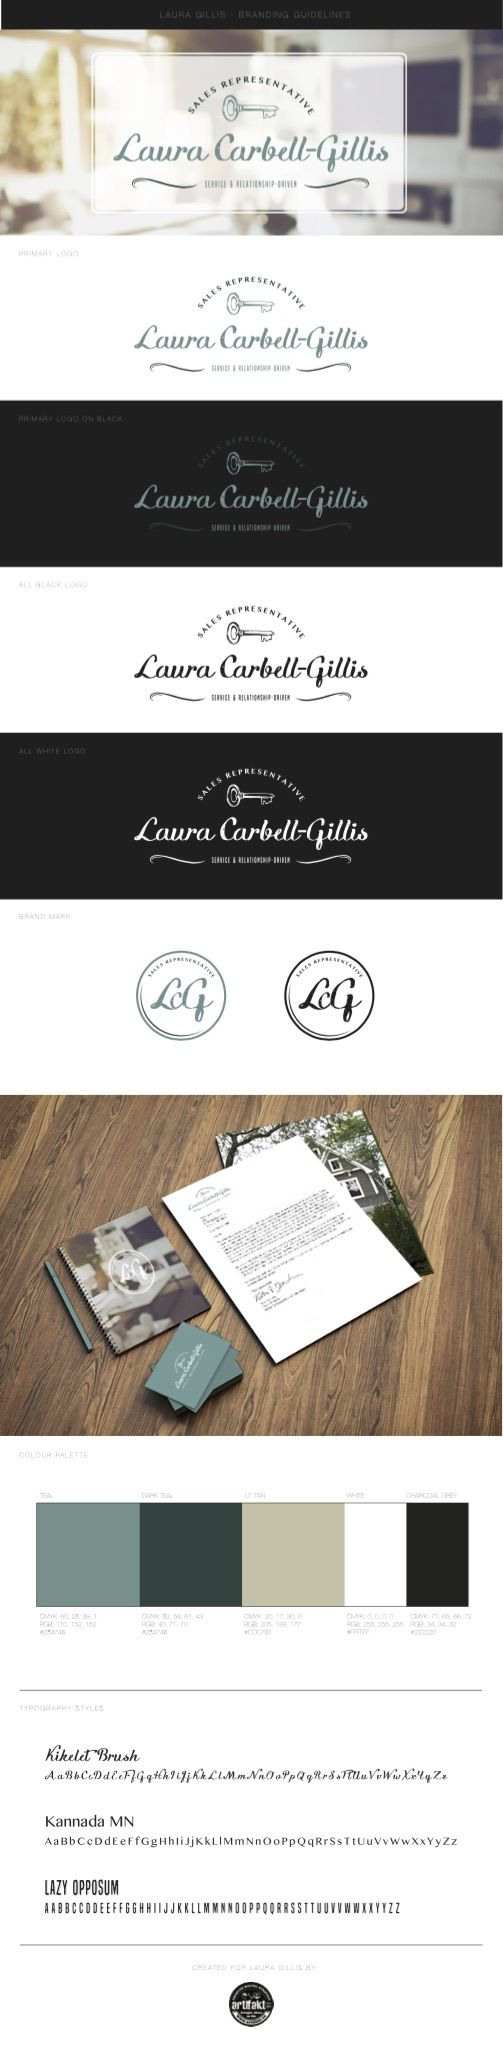 The completed branding guidelines we did for 'Laura Gillis', a real estate agent in Ontario's Niagara region.